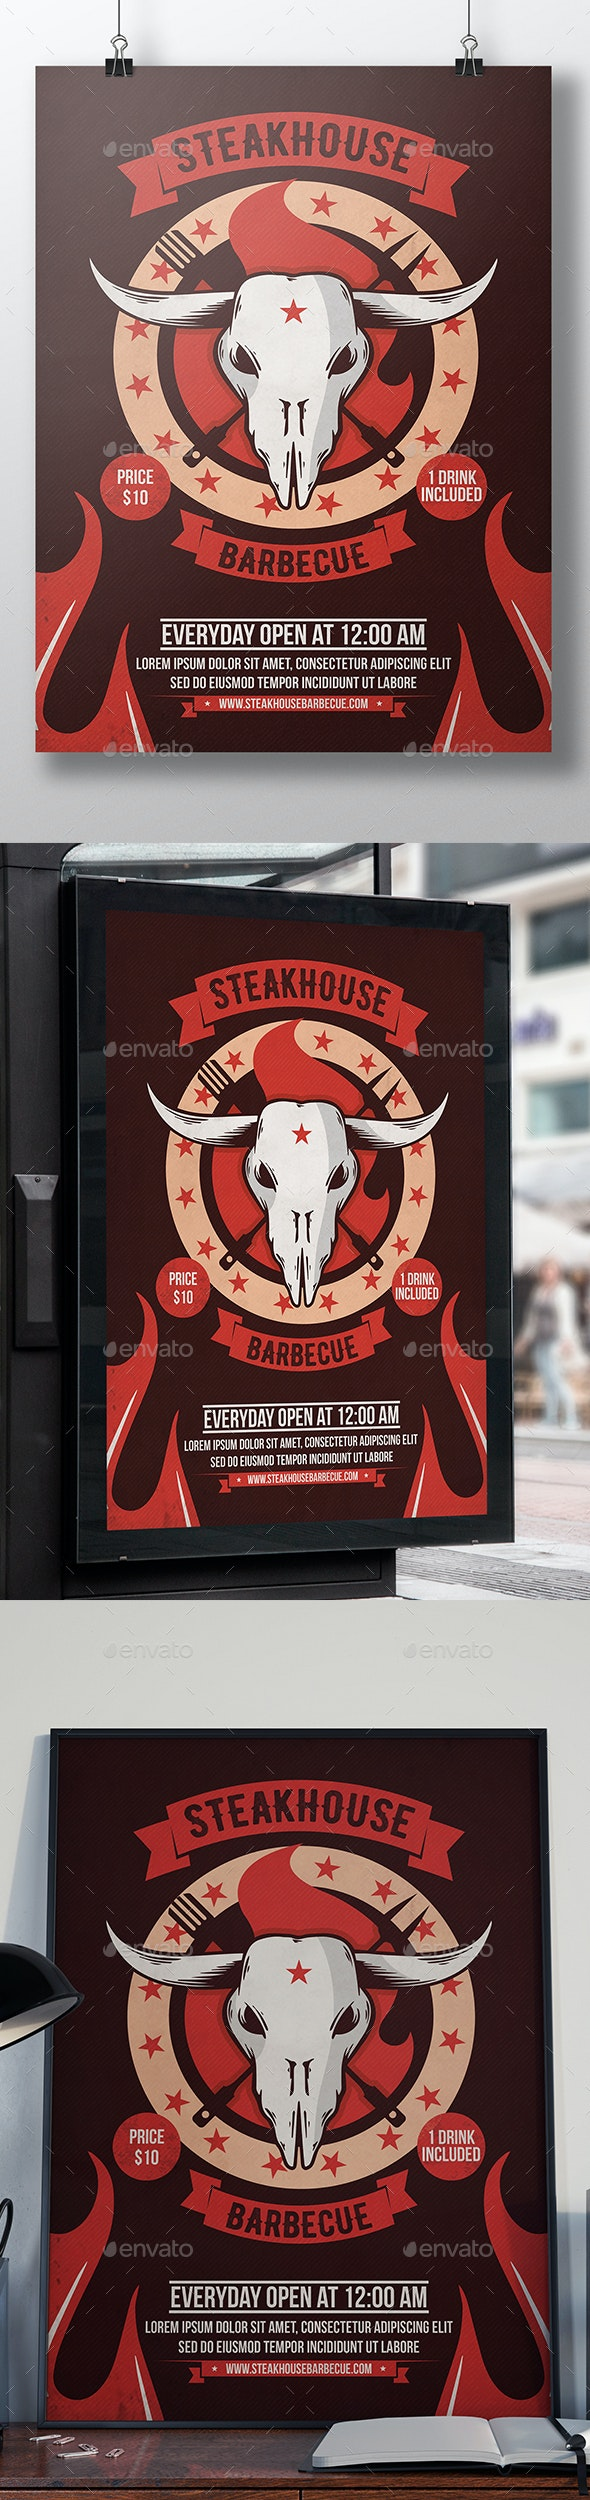 Steakhouse Bbq Poster Template - Events Flyers